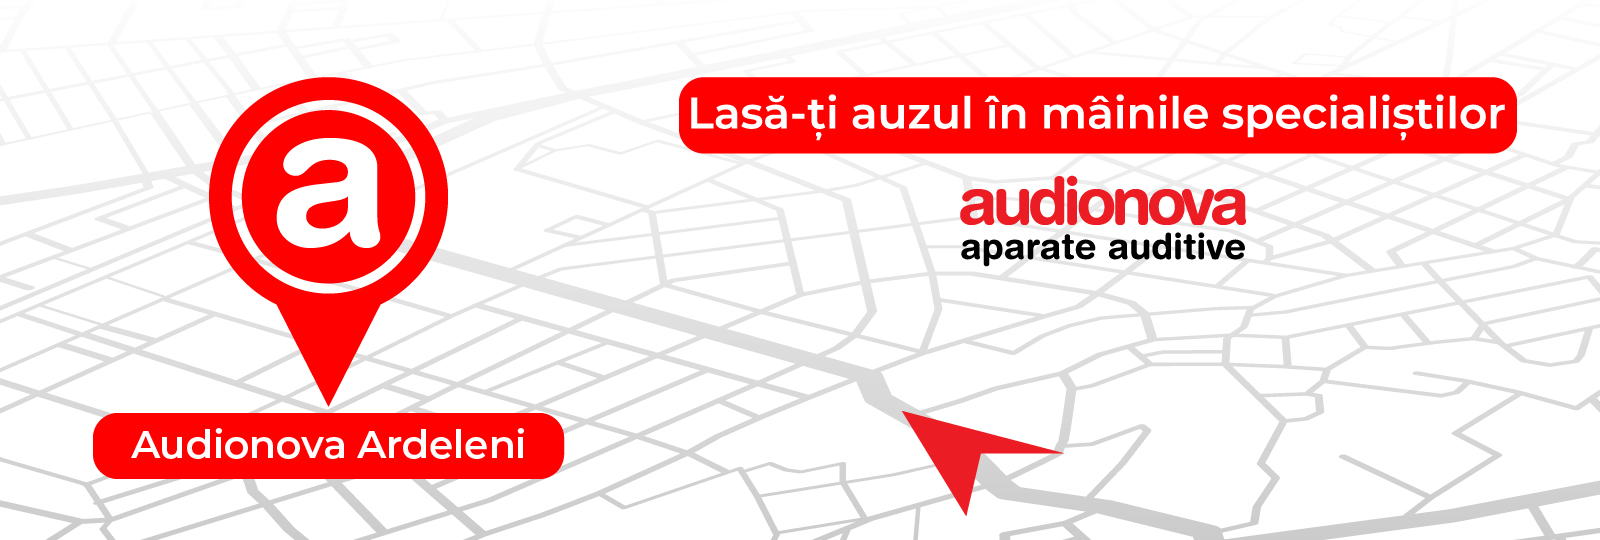 aparate auditive bucuresti ardeleni